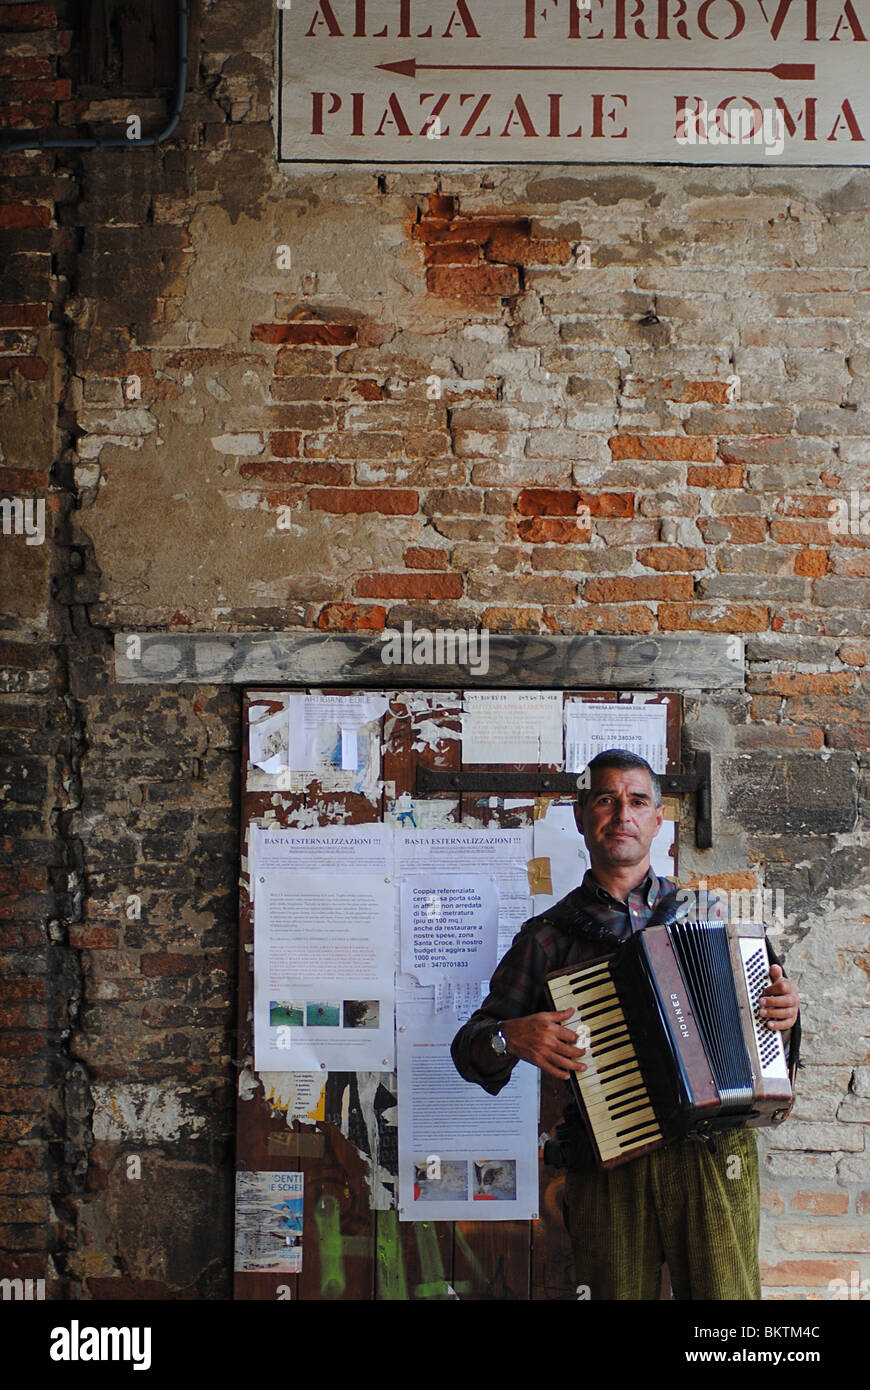 Busker playing an accordion, Venice, Italy - Stock Image